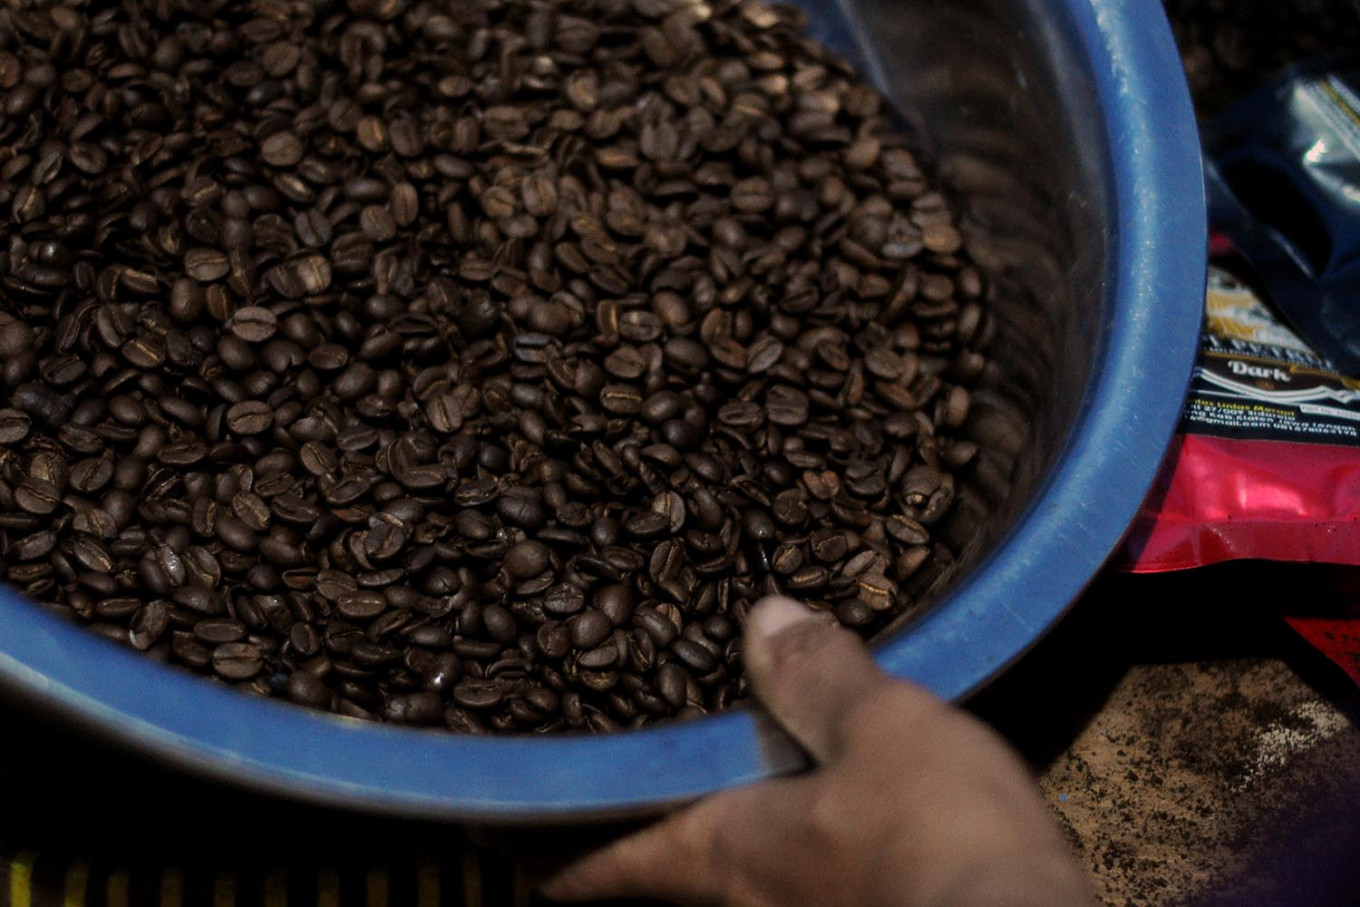 Coffee beans are ready to be milled. The black coffee has a distinctive taste. JP/Magnus Hendratmo